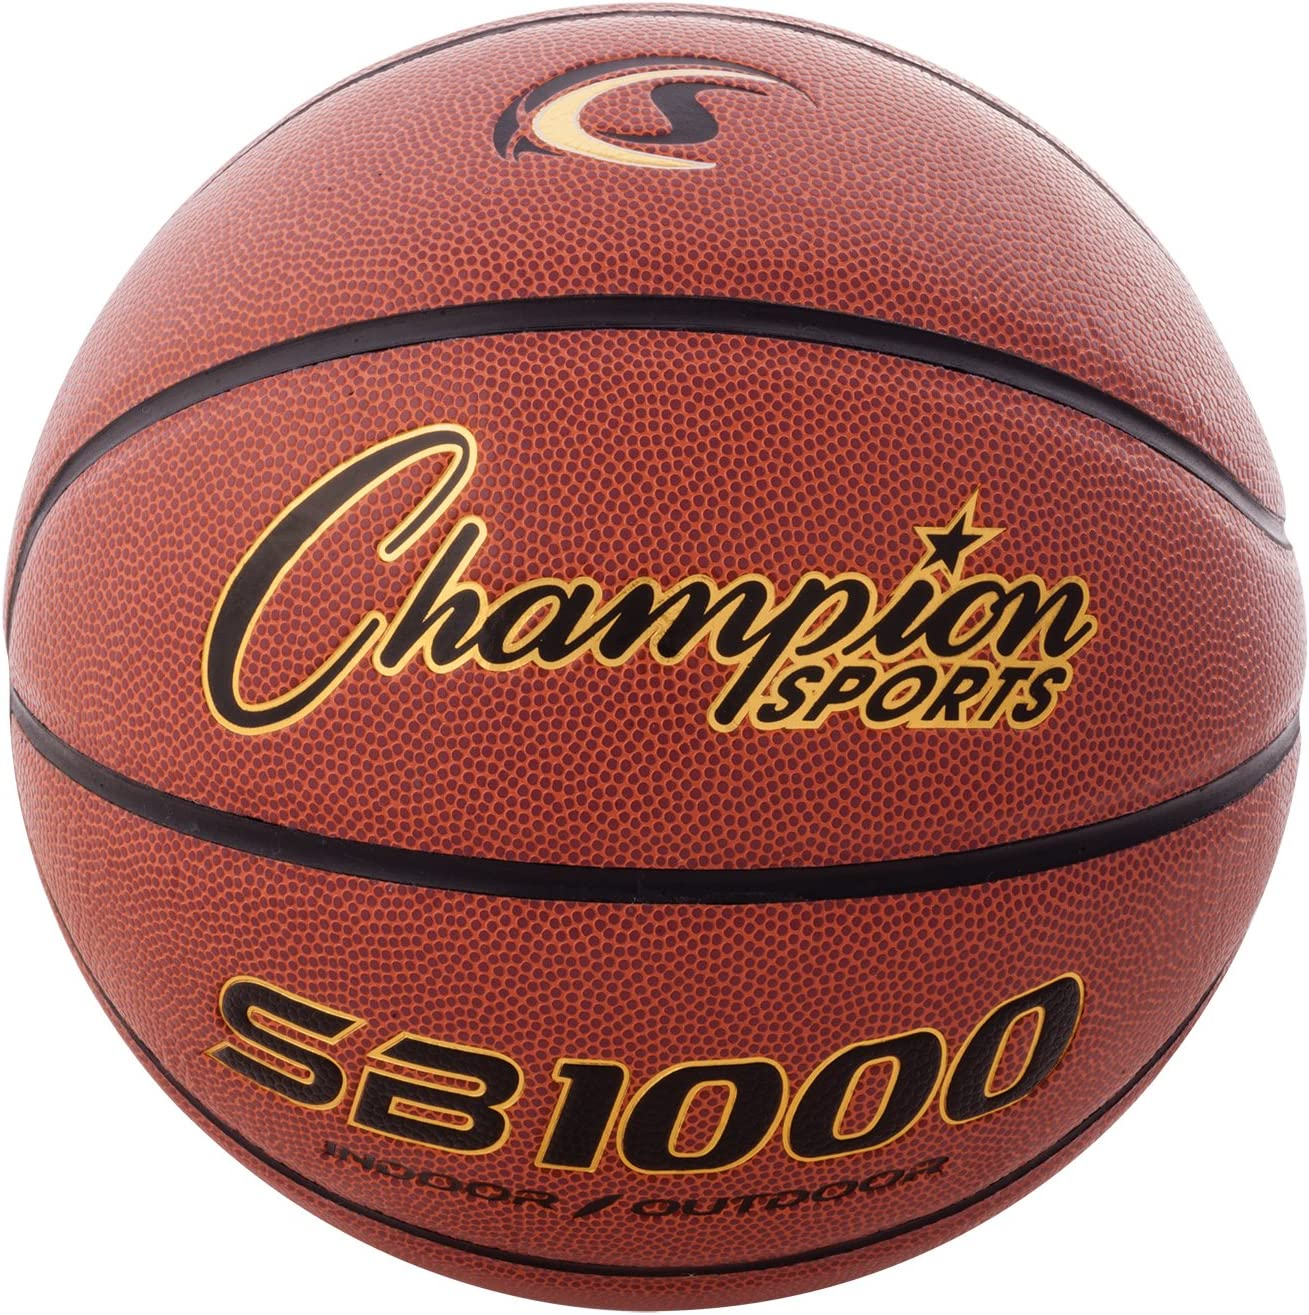 Champion Sports - Balones de Baloncesto, Color Oficial (Talla 7 ...